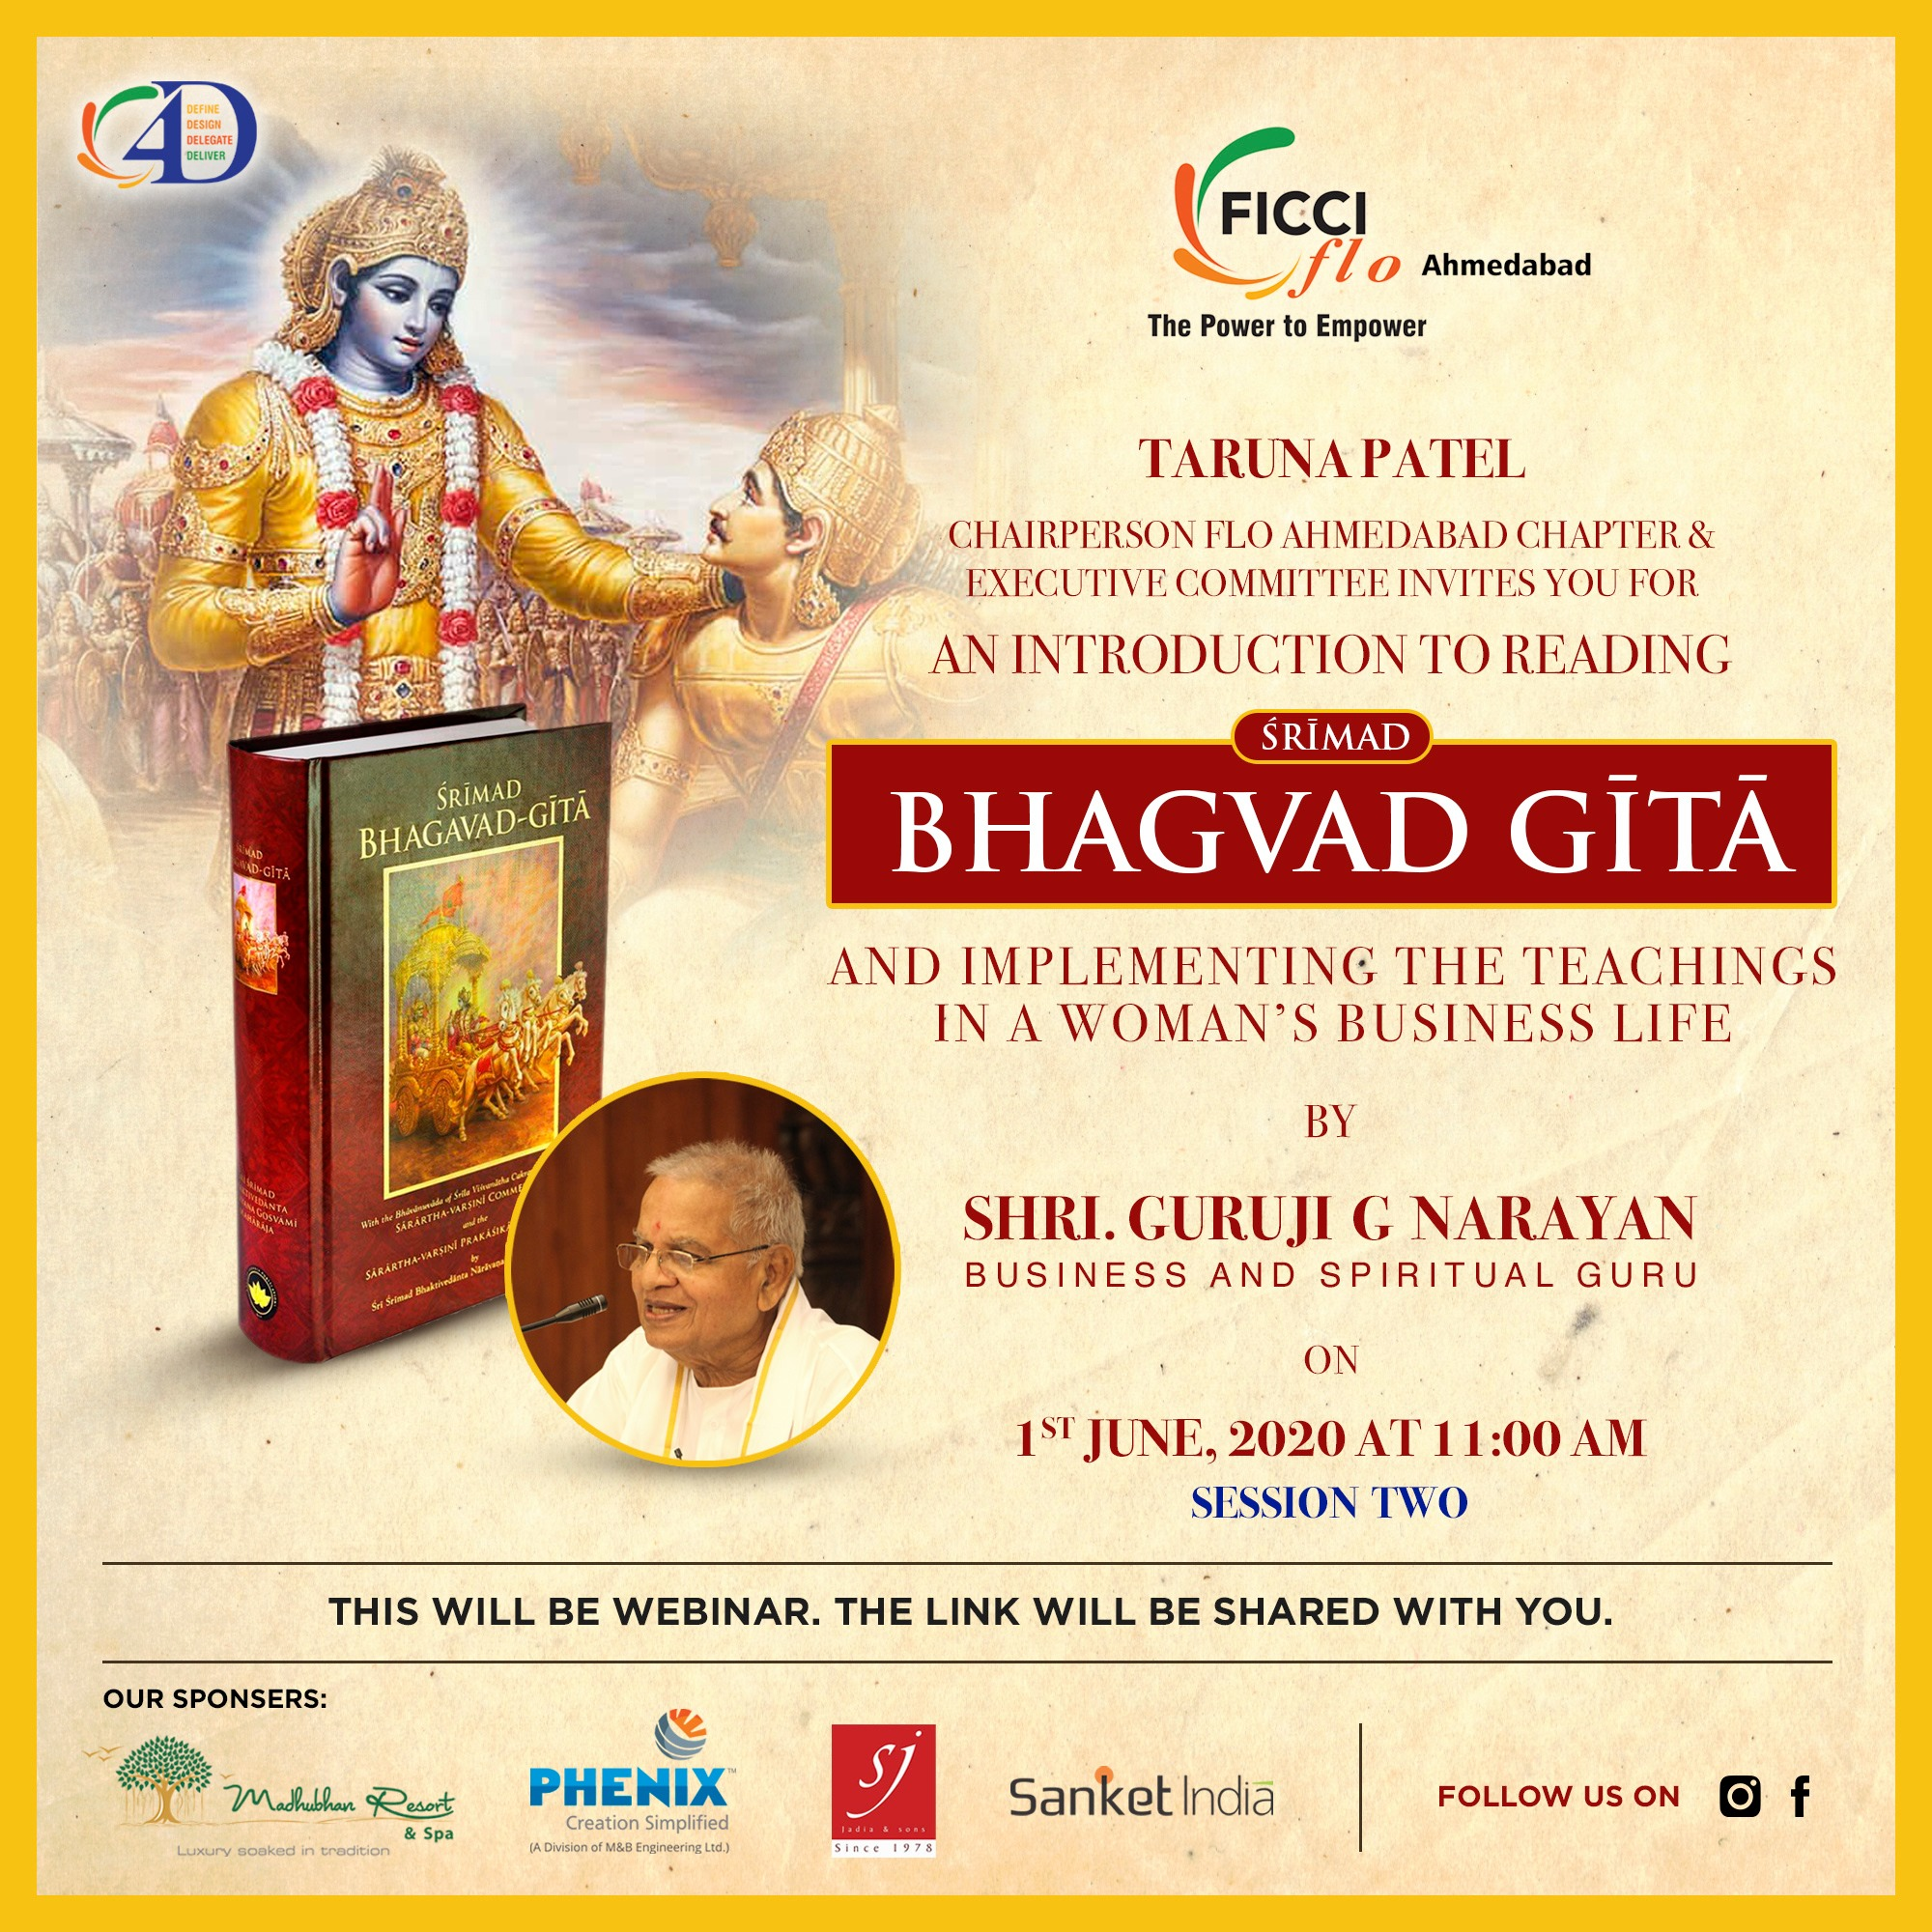 https://creativeyatra.com/wp-content/uploads/2020/05/An-Introduction-to-Reading-Shrimad-Bhagwad-Gita-Session-Two.jpg